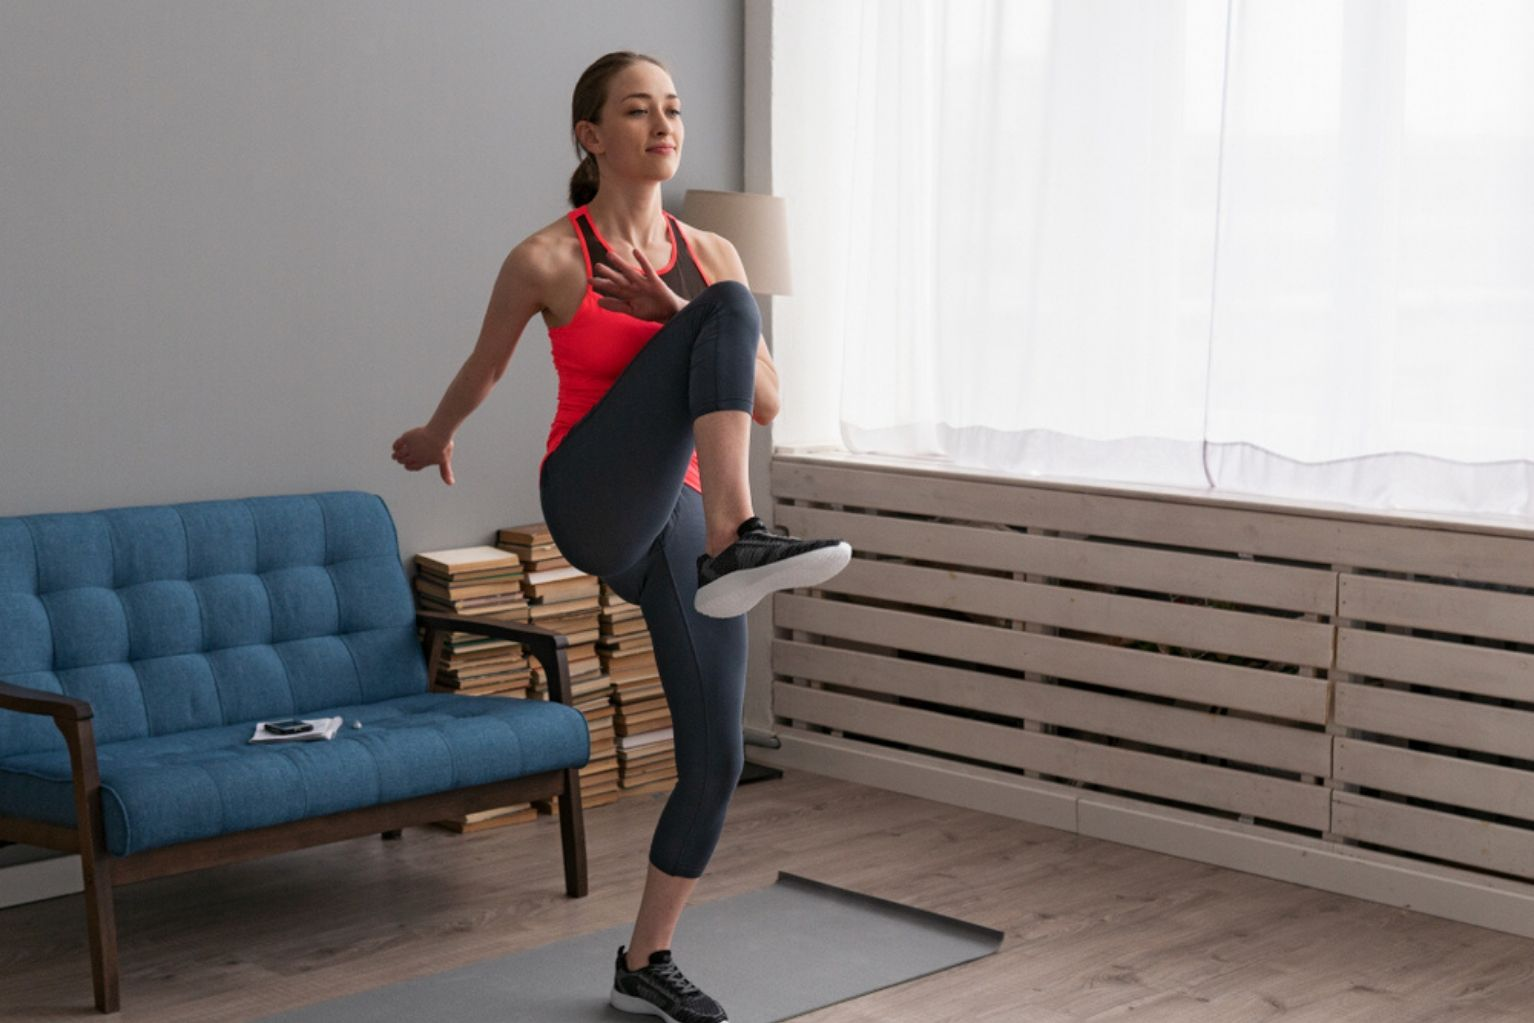 Young athletic woman doing high knees exercise in her home